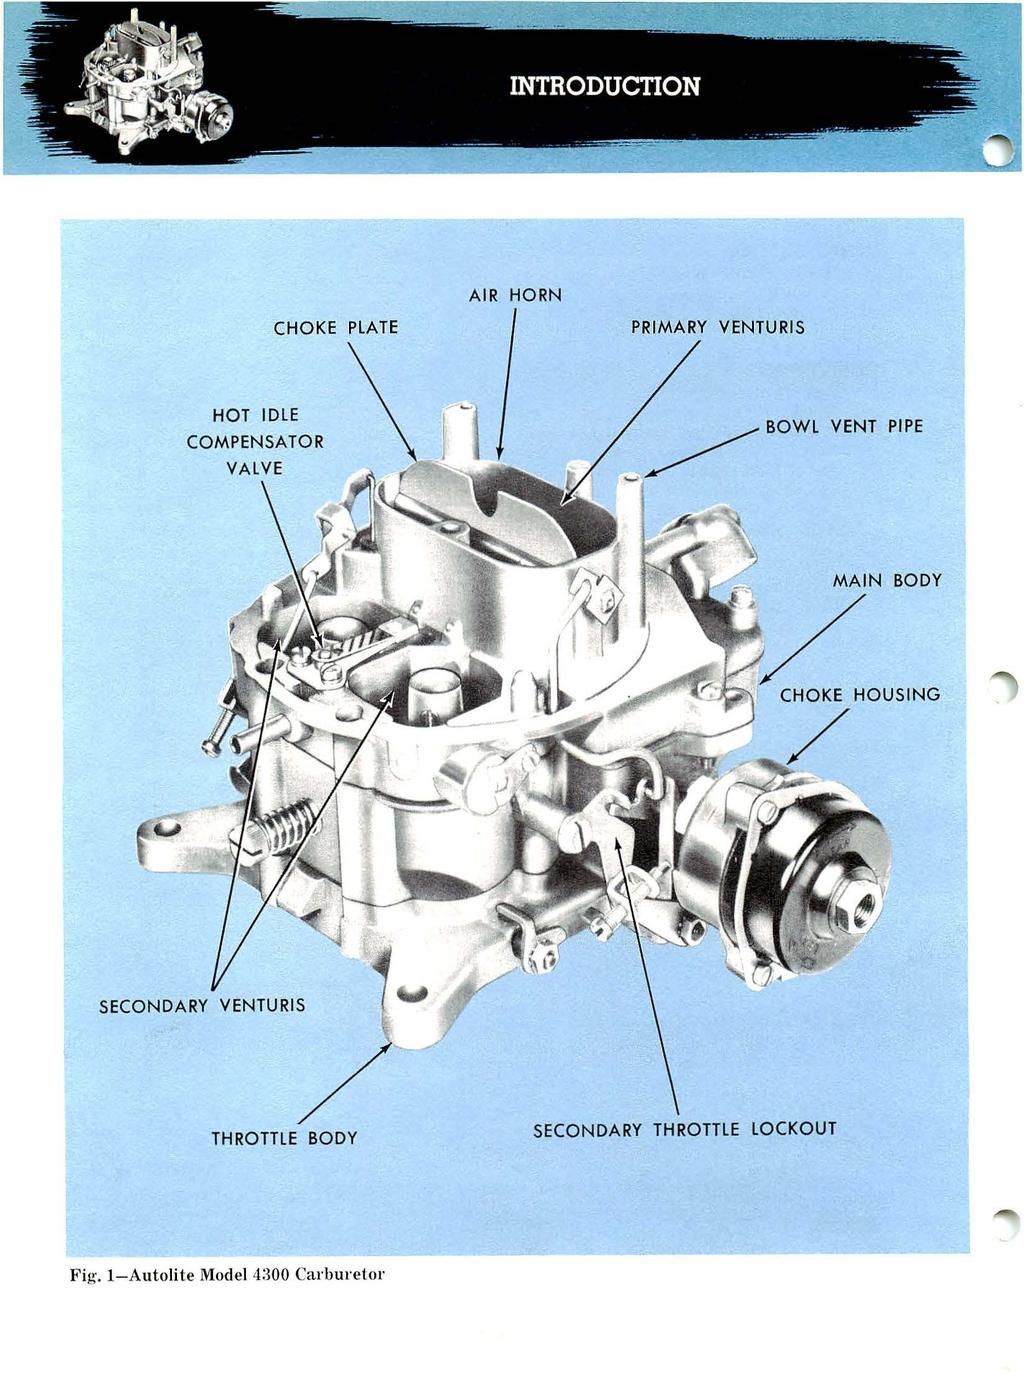 Governor Linkage Diagrams Besides Briggs Stratton Carburetor Diagram Autolite Model Operation Adjustment Ejd And Overhaul Air Horn Choke Plate Primary Venturis Hot Idle Compensator Body Secondary